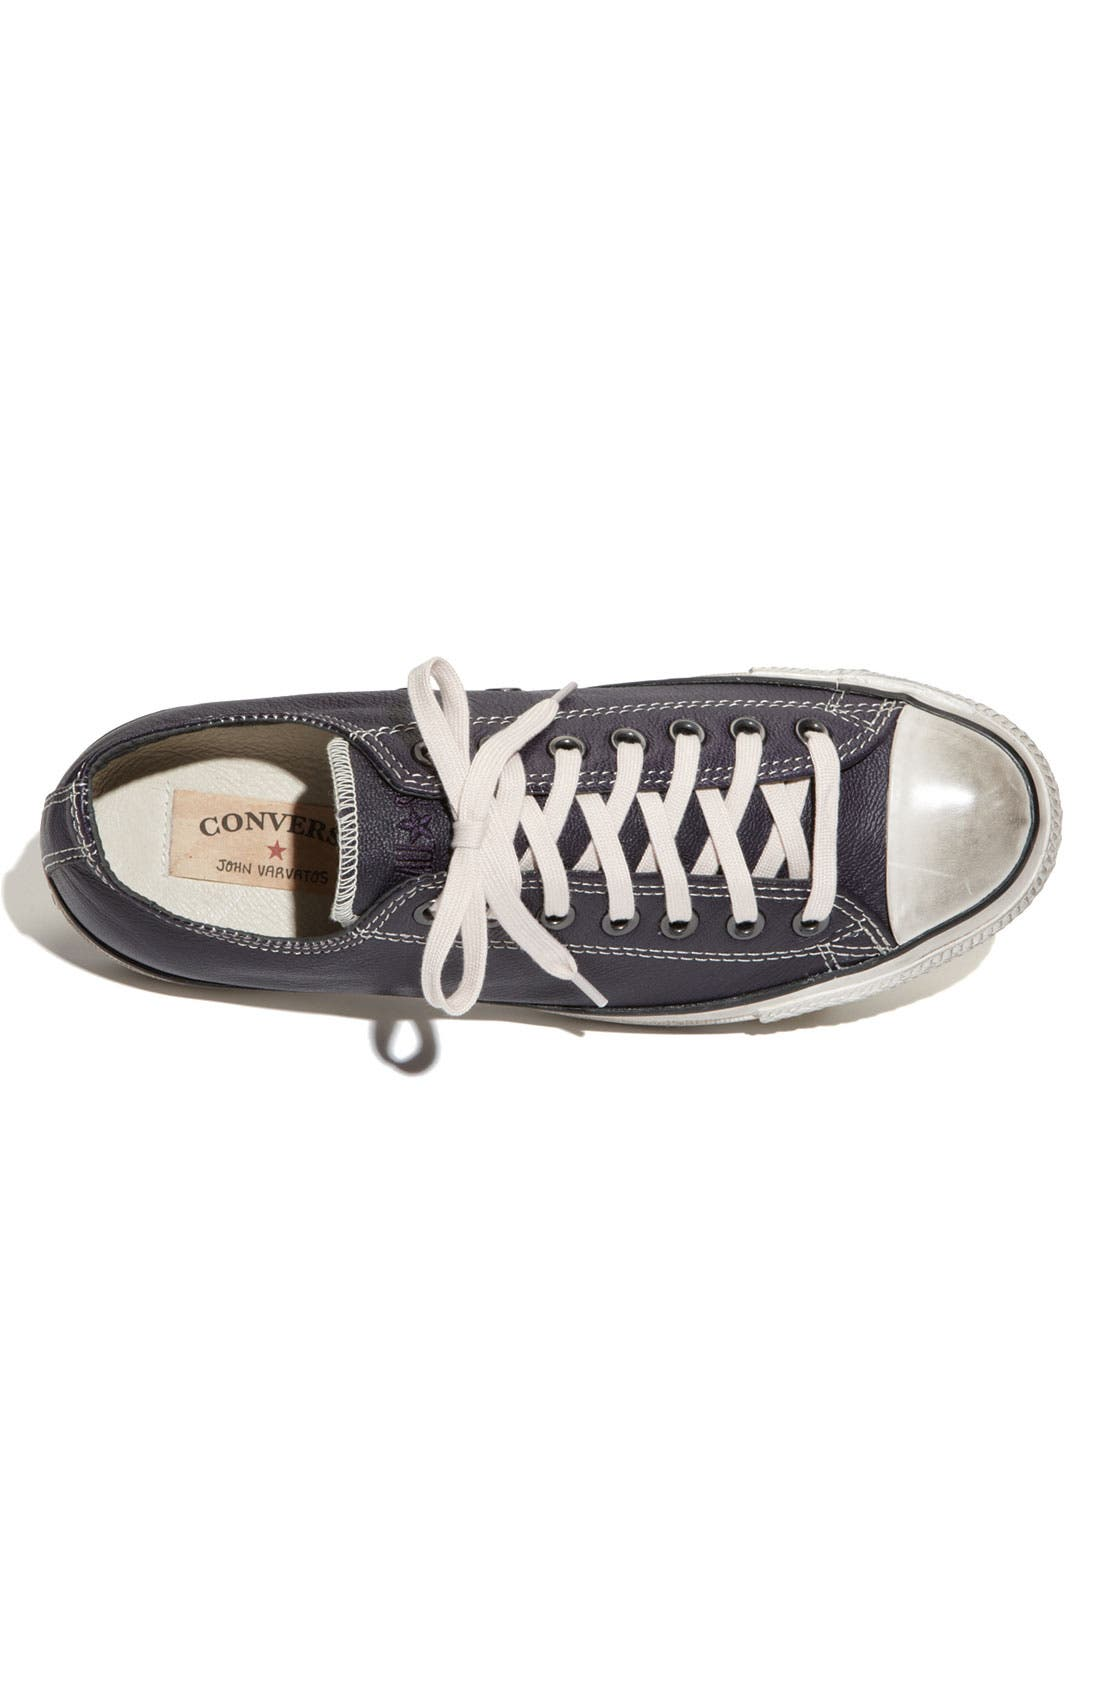 Alternate Image 3  - Converse by John Varvatos Sneaker